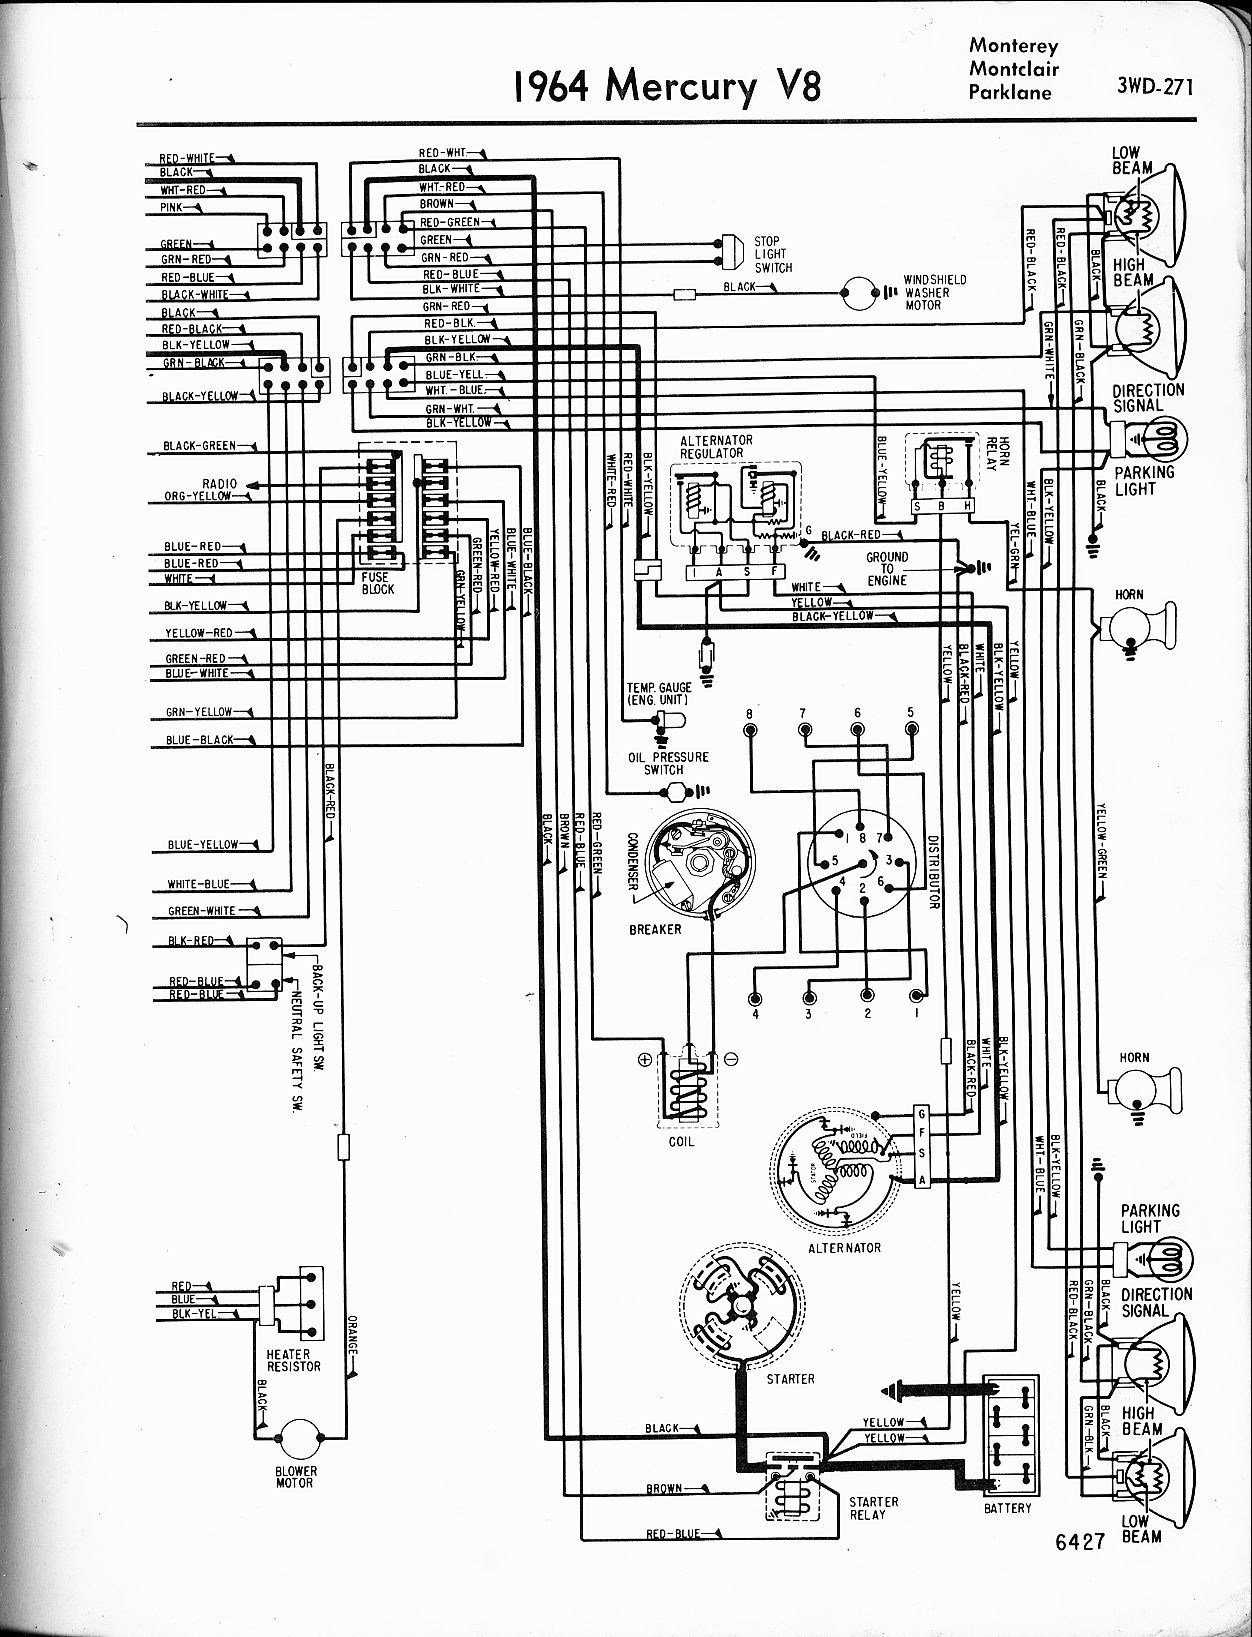 Diagram Yamaha Outboard Harness Wiring Diagram Full Version Hd Quality Wiring Diagram Diagramforlife Conservatoire Chanterie Fr